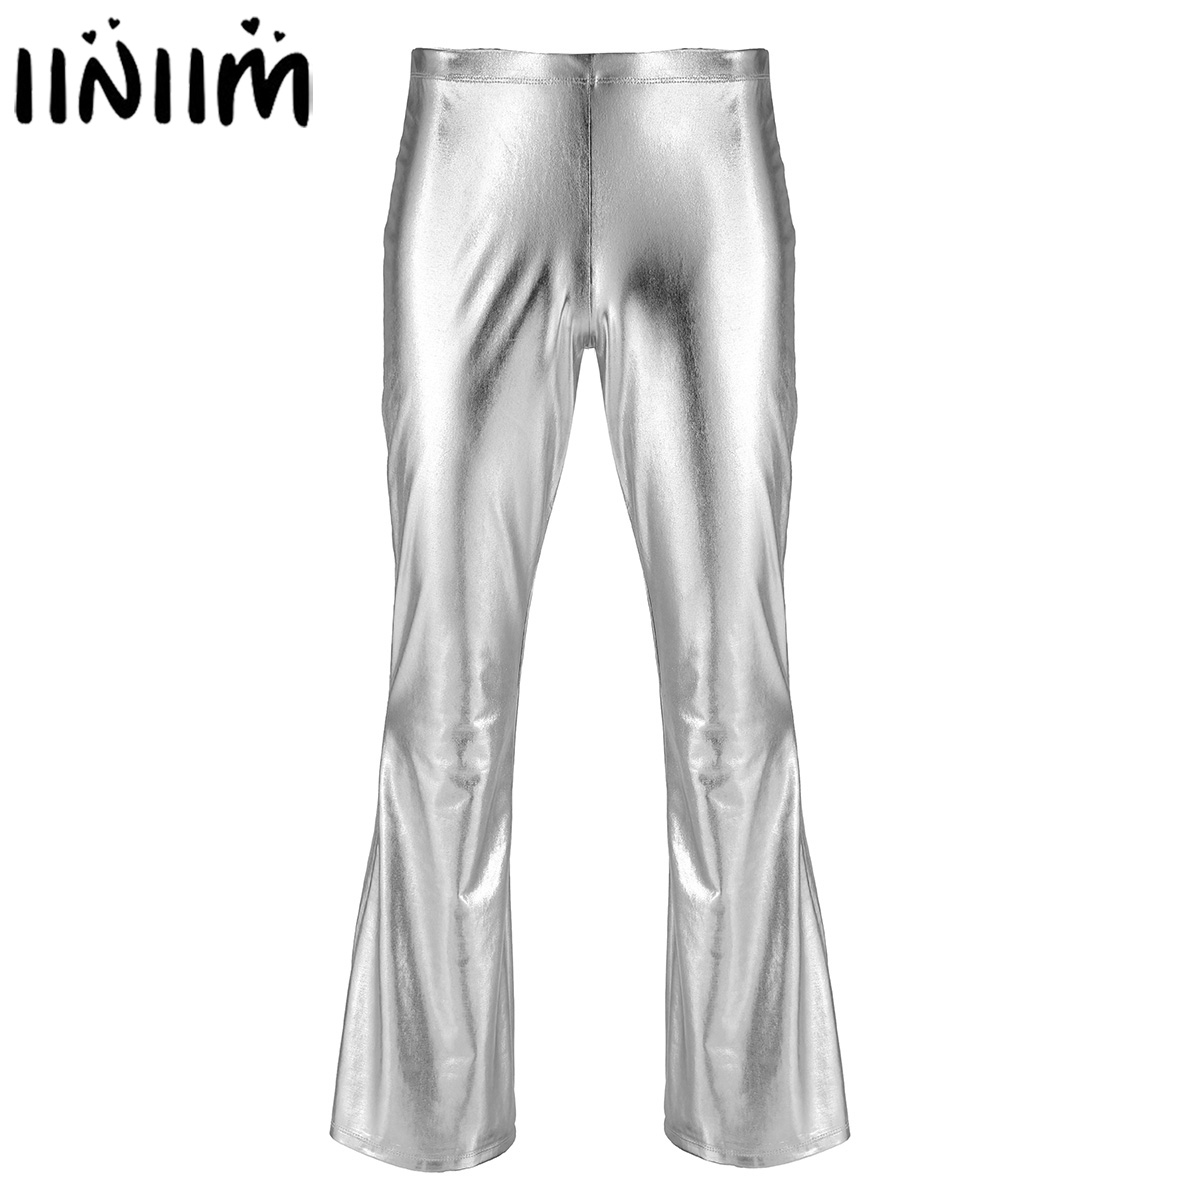 e28a0dc2f4103 iiniim Adult Mens Punk Night Club Wear Pants Shiny Metallic Disco Pants  with Bell Bottom Flared Long Pants Dude Costume Trousers-in Flare Pants  from Men s ...